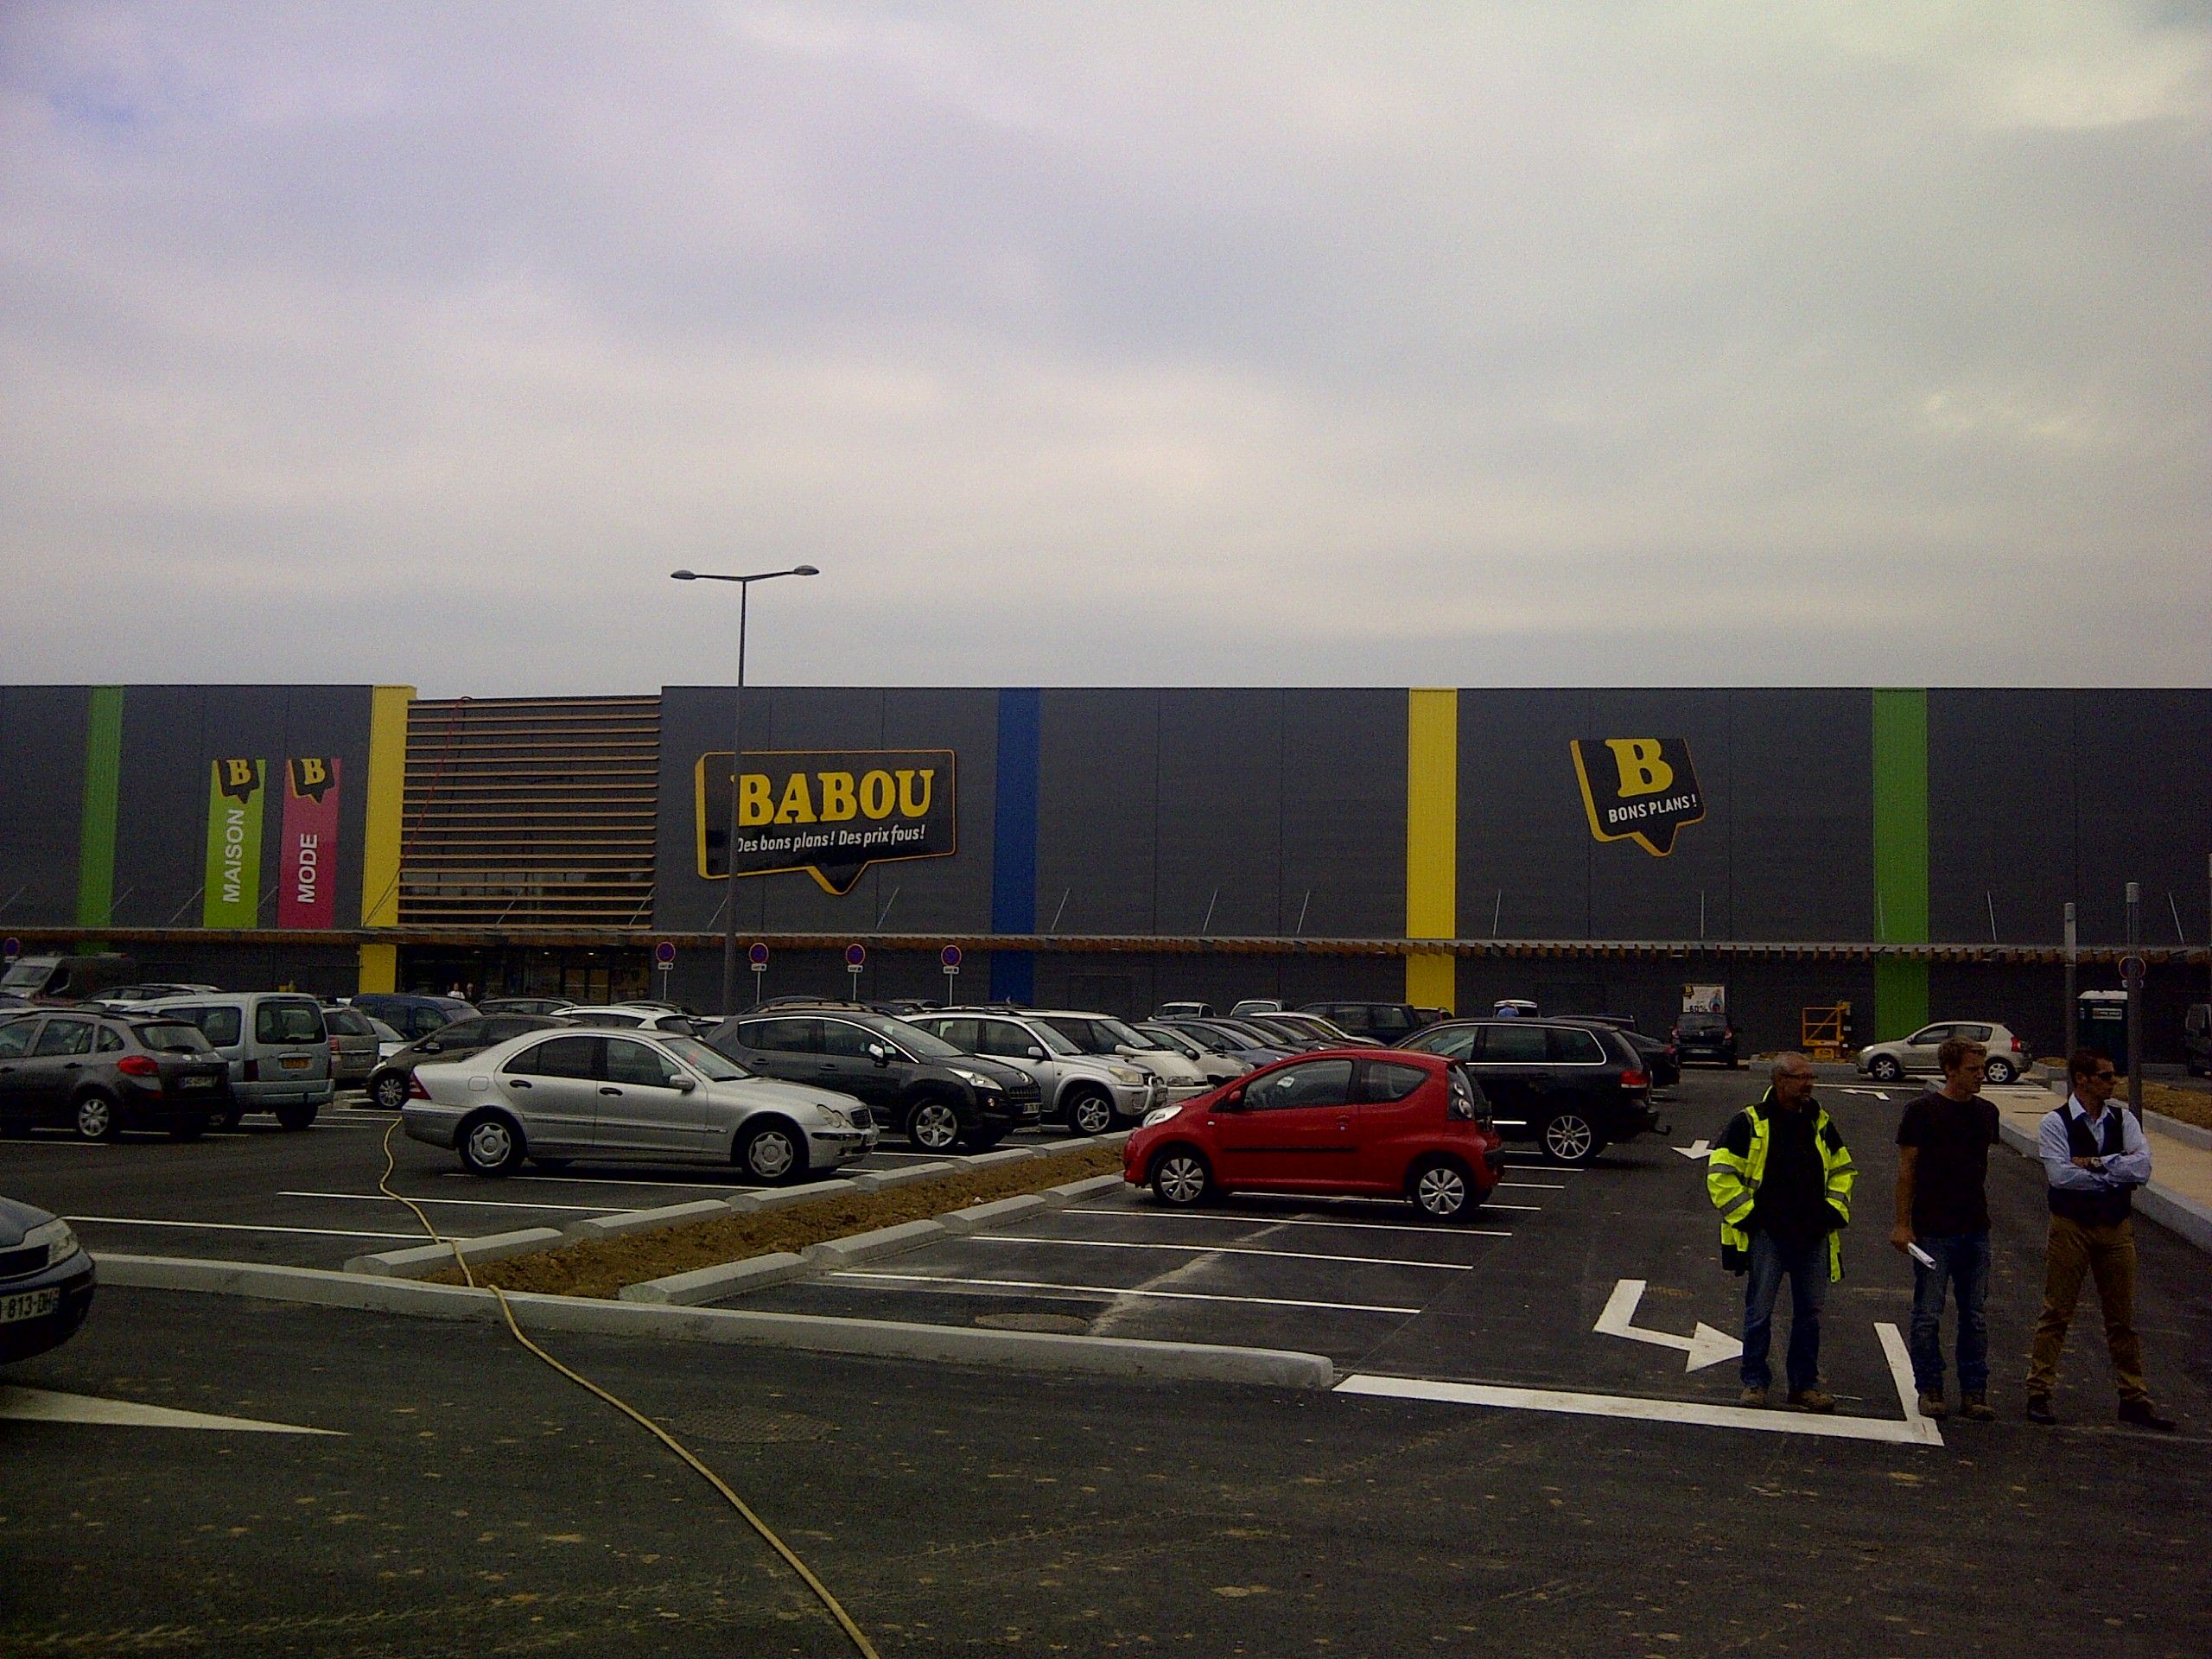 Magasin Babou